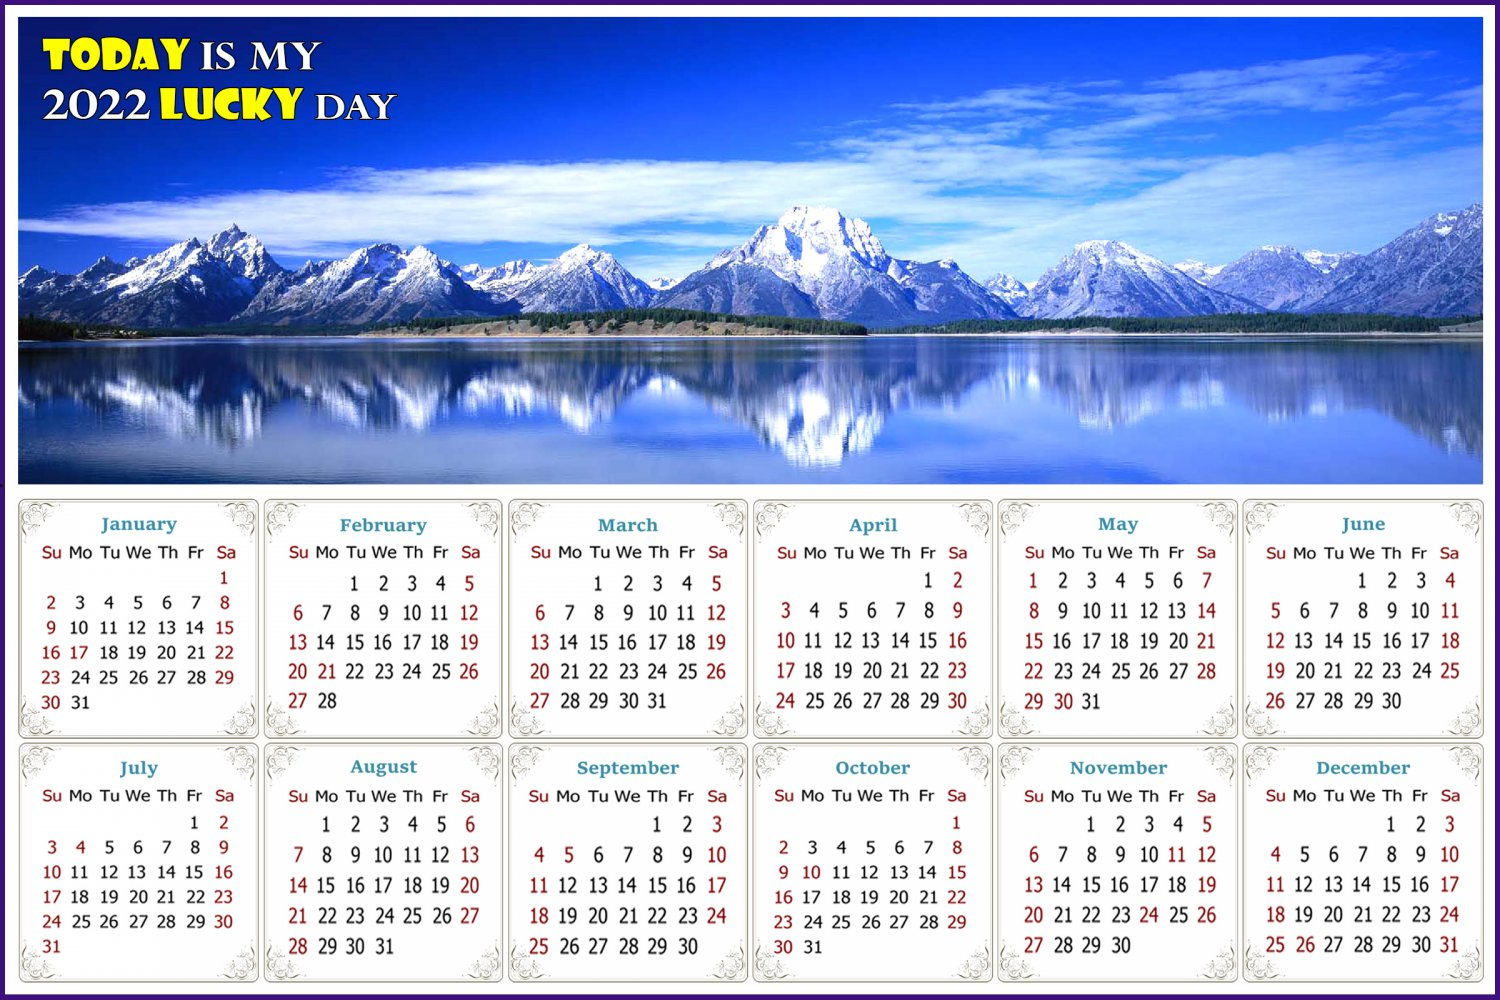 2022 Magnetic Calendar - Calendar Magnets - Today is my Lucky Day - Jackson Lake Wyoming